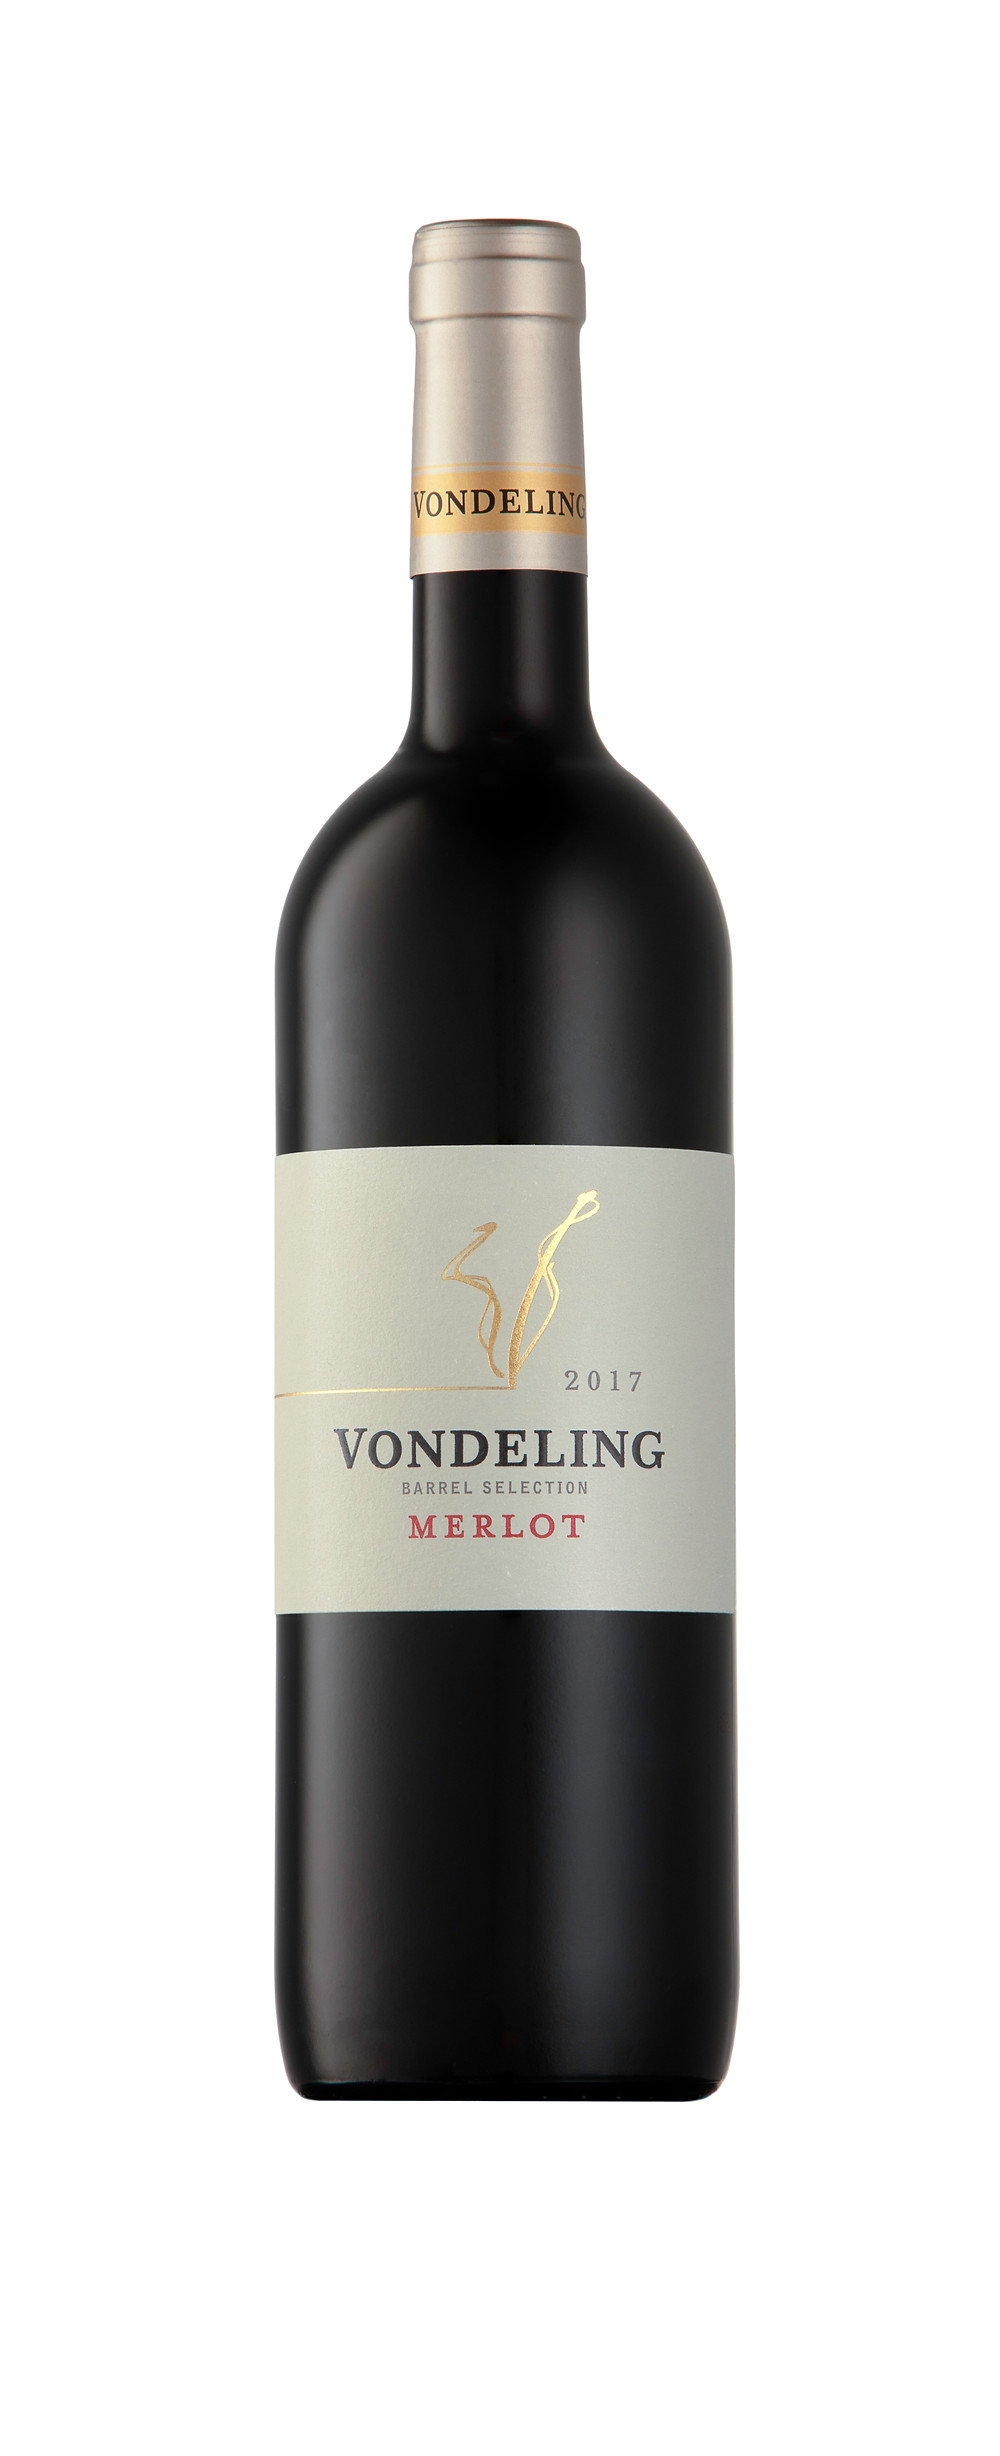 Merlot from Vondeling joins Barrel Selection range. South African wine